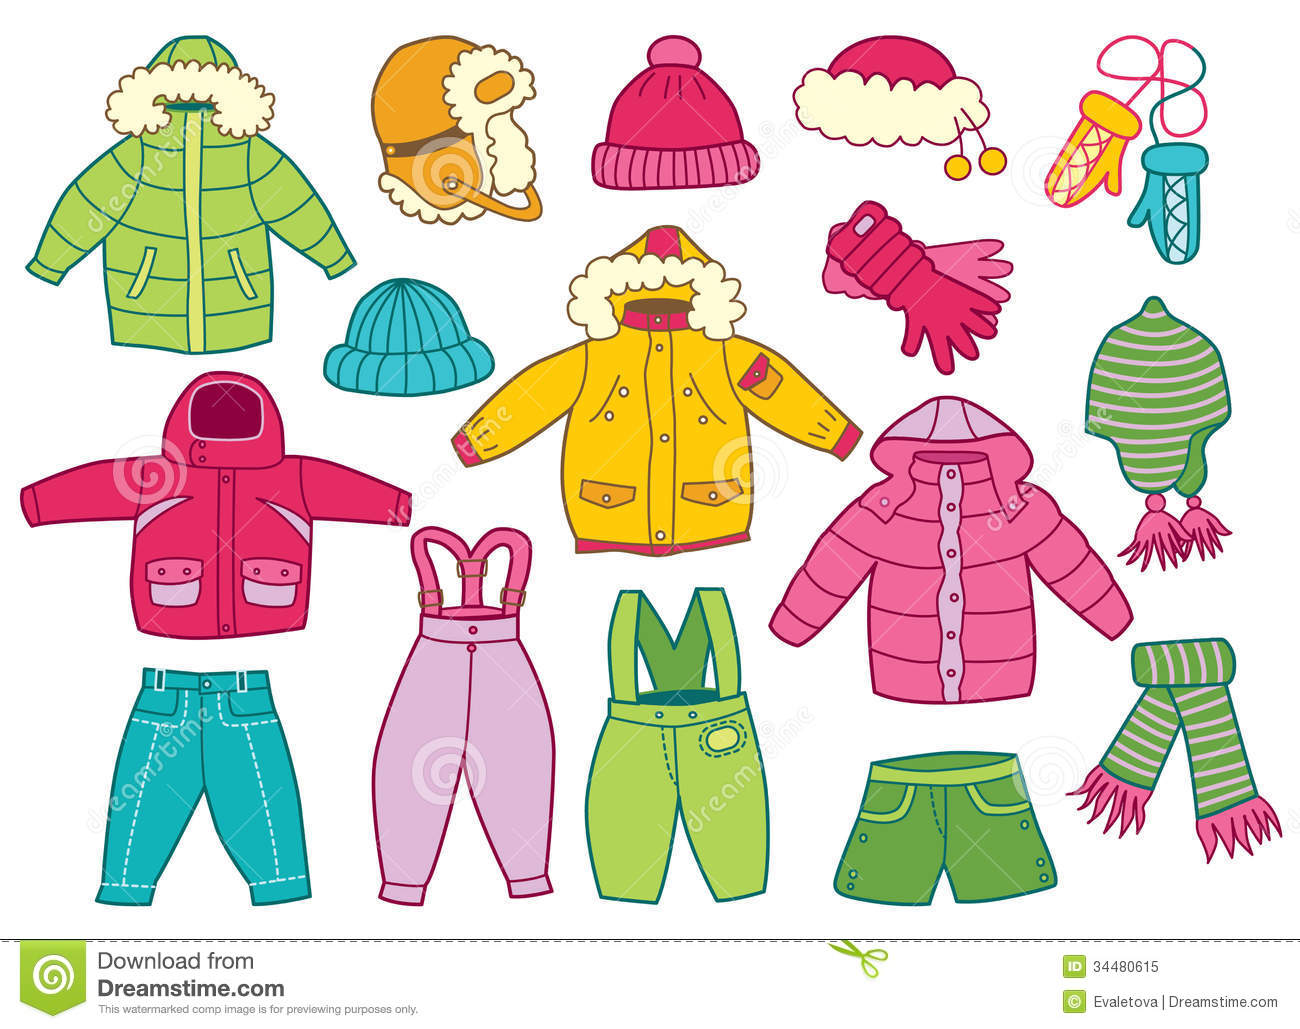 Winter clothes clipart #20